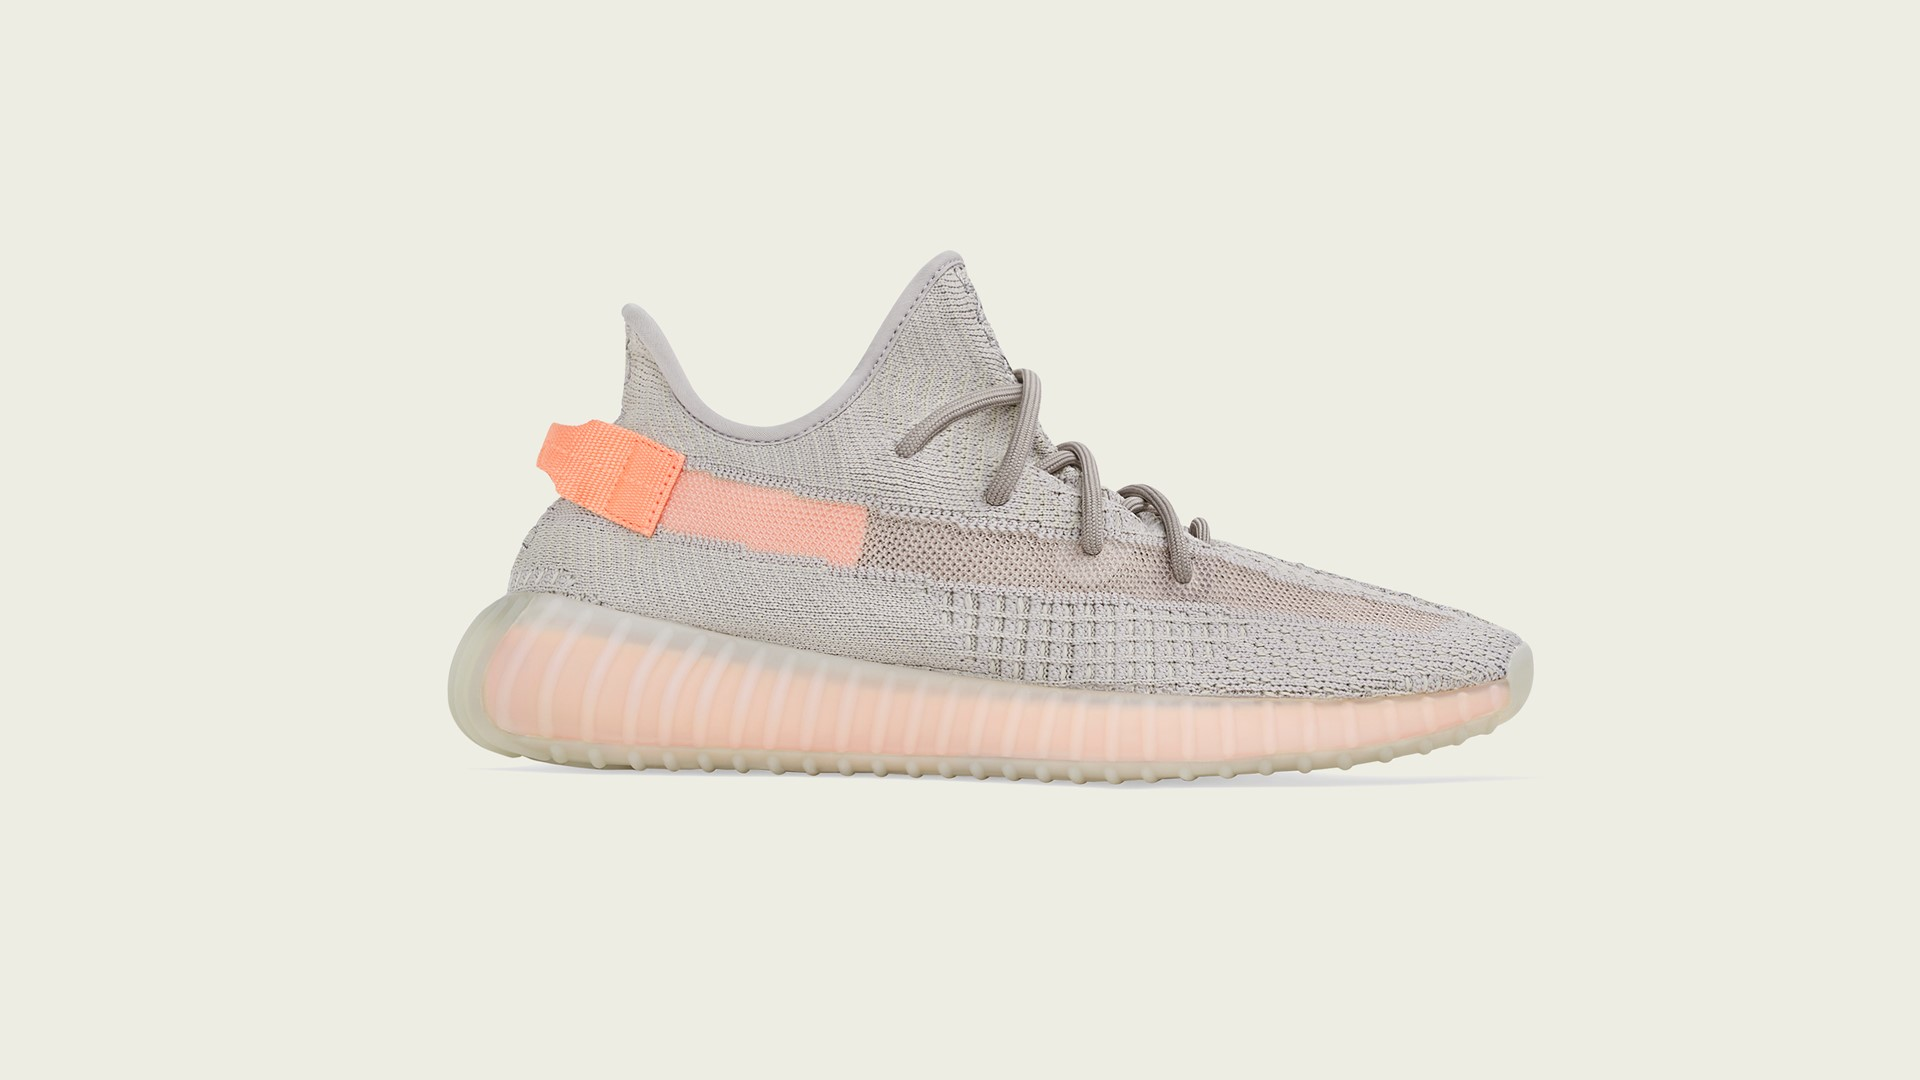 100% authentic ecb20 cad9c adidas + Kanye West announce the YEEZY BOOST 350 V2 TRFRM